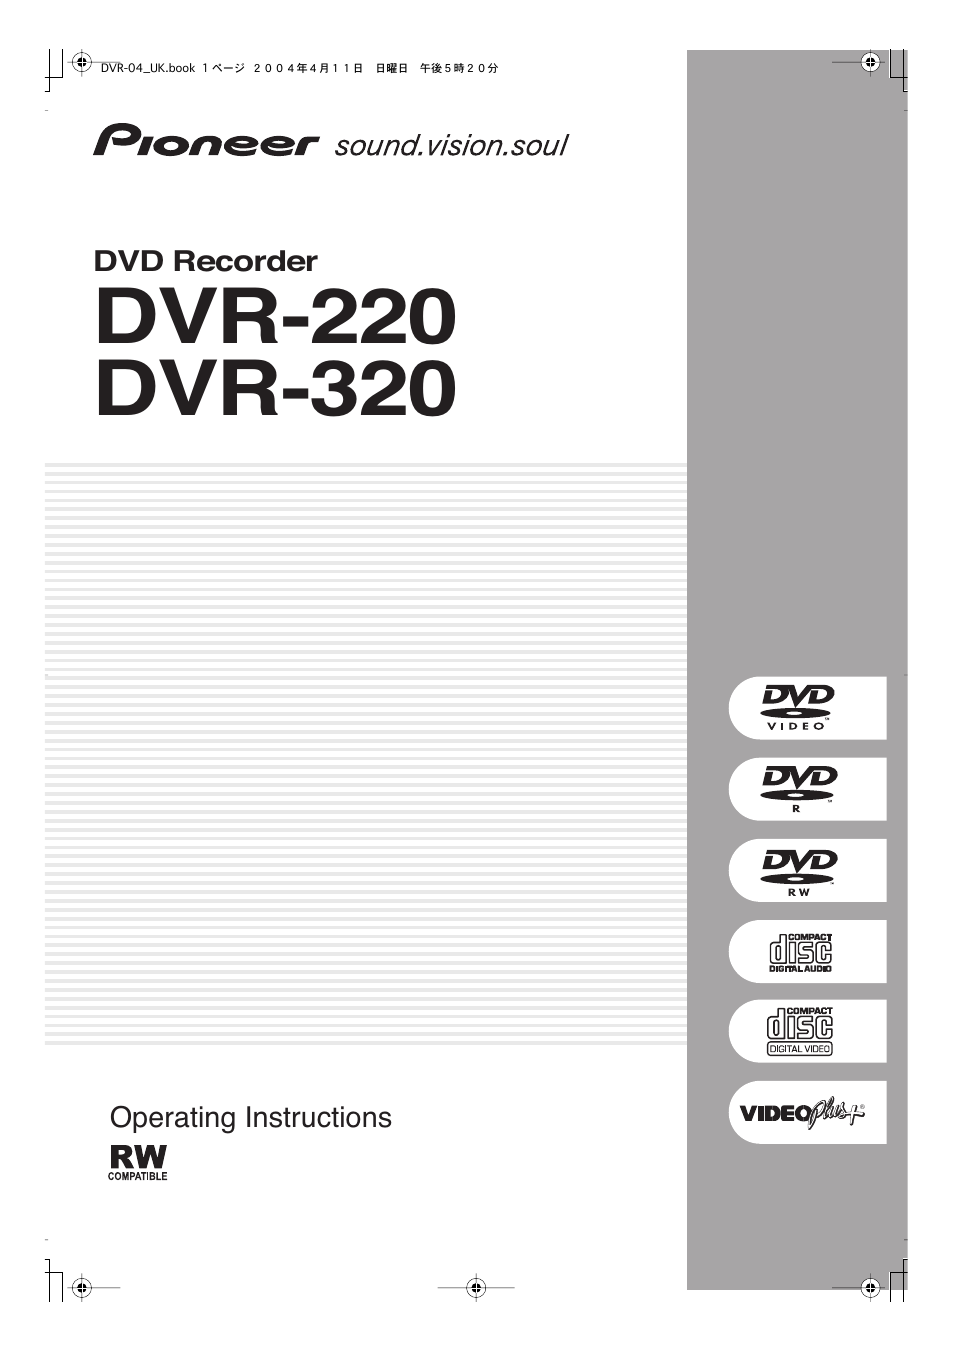 pioneer dvr 220 user manual 108 pages also for dvr 320 rh manualsdir com Annke DVR User Manuals pioneer dvd recorder dvr-220 manual